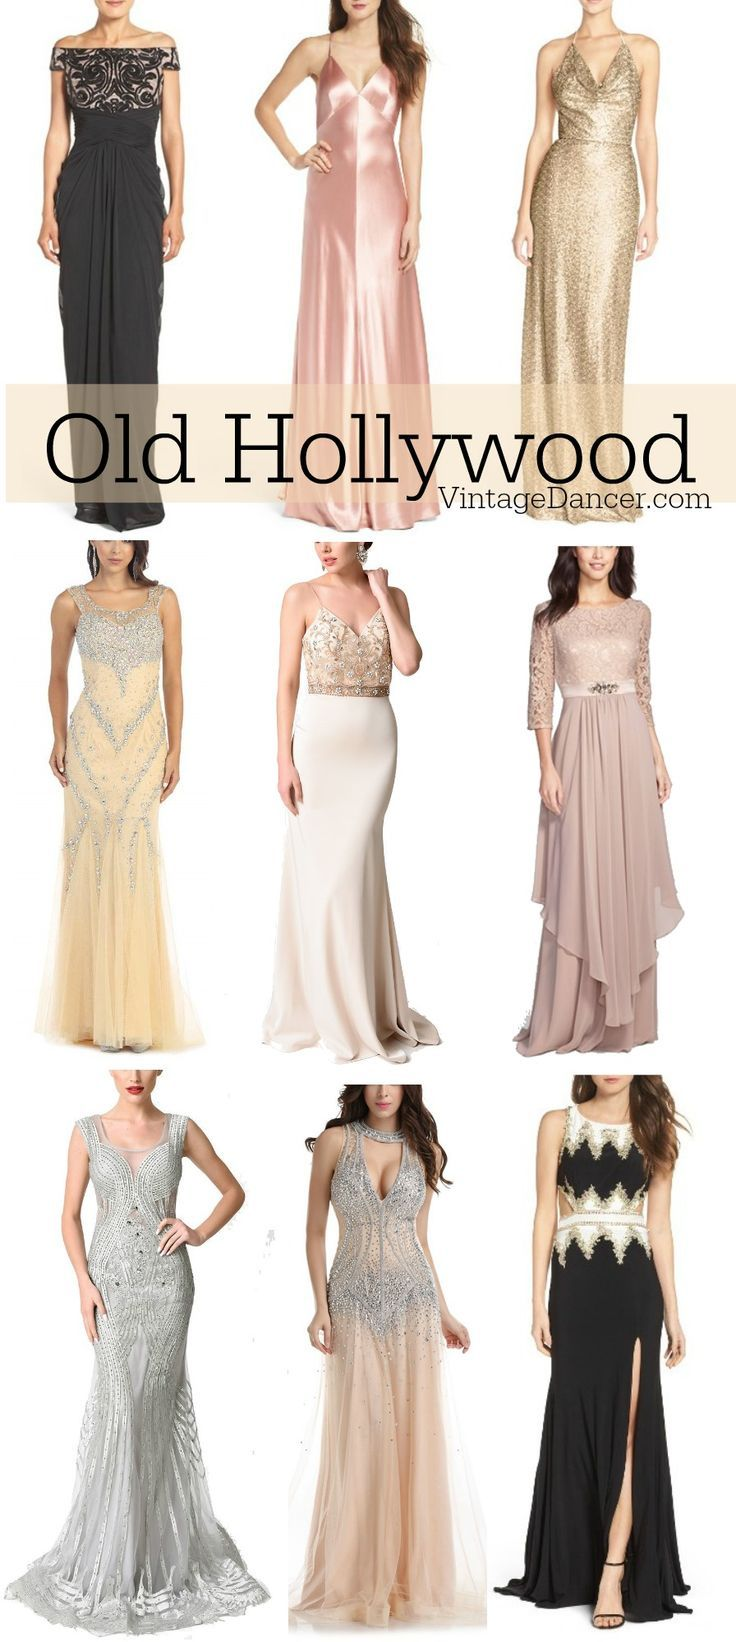 1930s Evening Dresses And Gowns Inspired By Old Hollywood Fashion Glamour